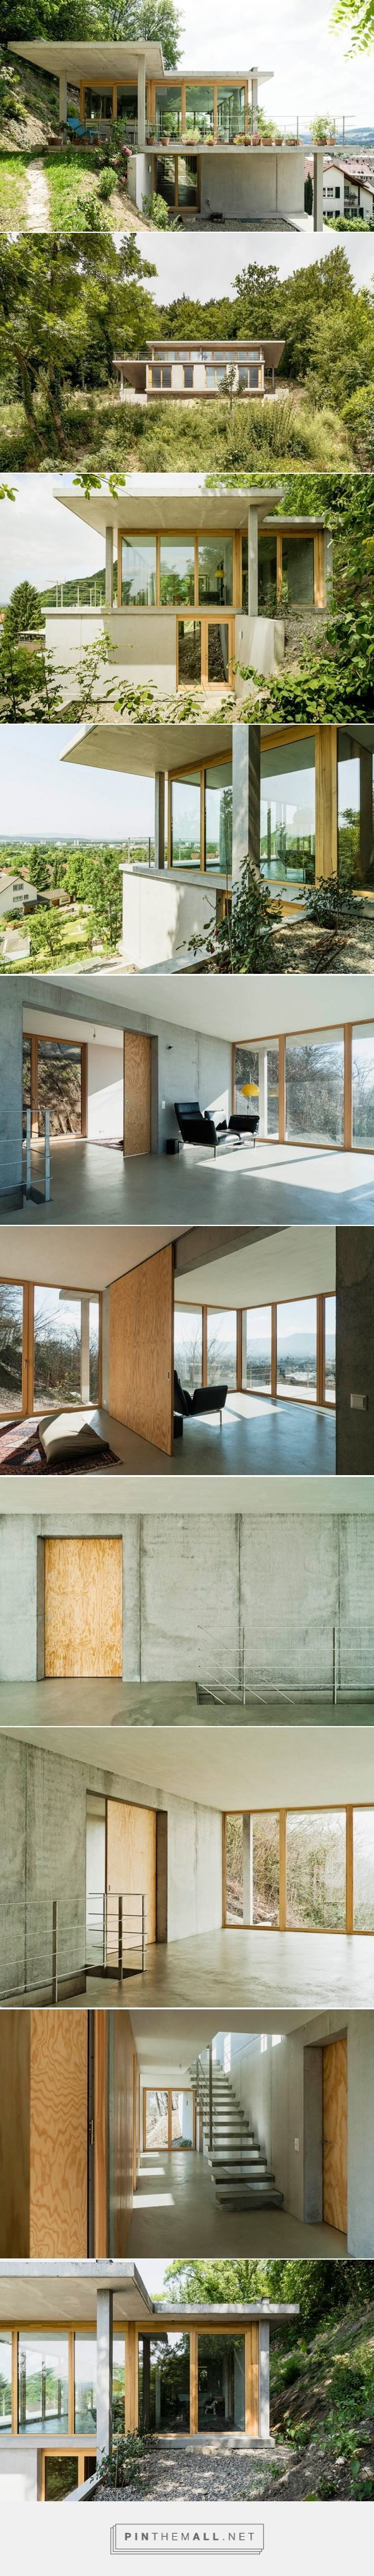 439 best house images on pinterest architecture faà ades and